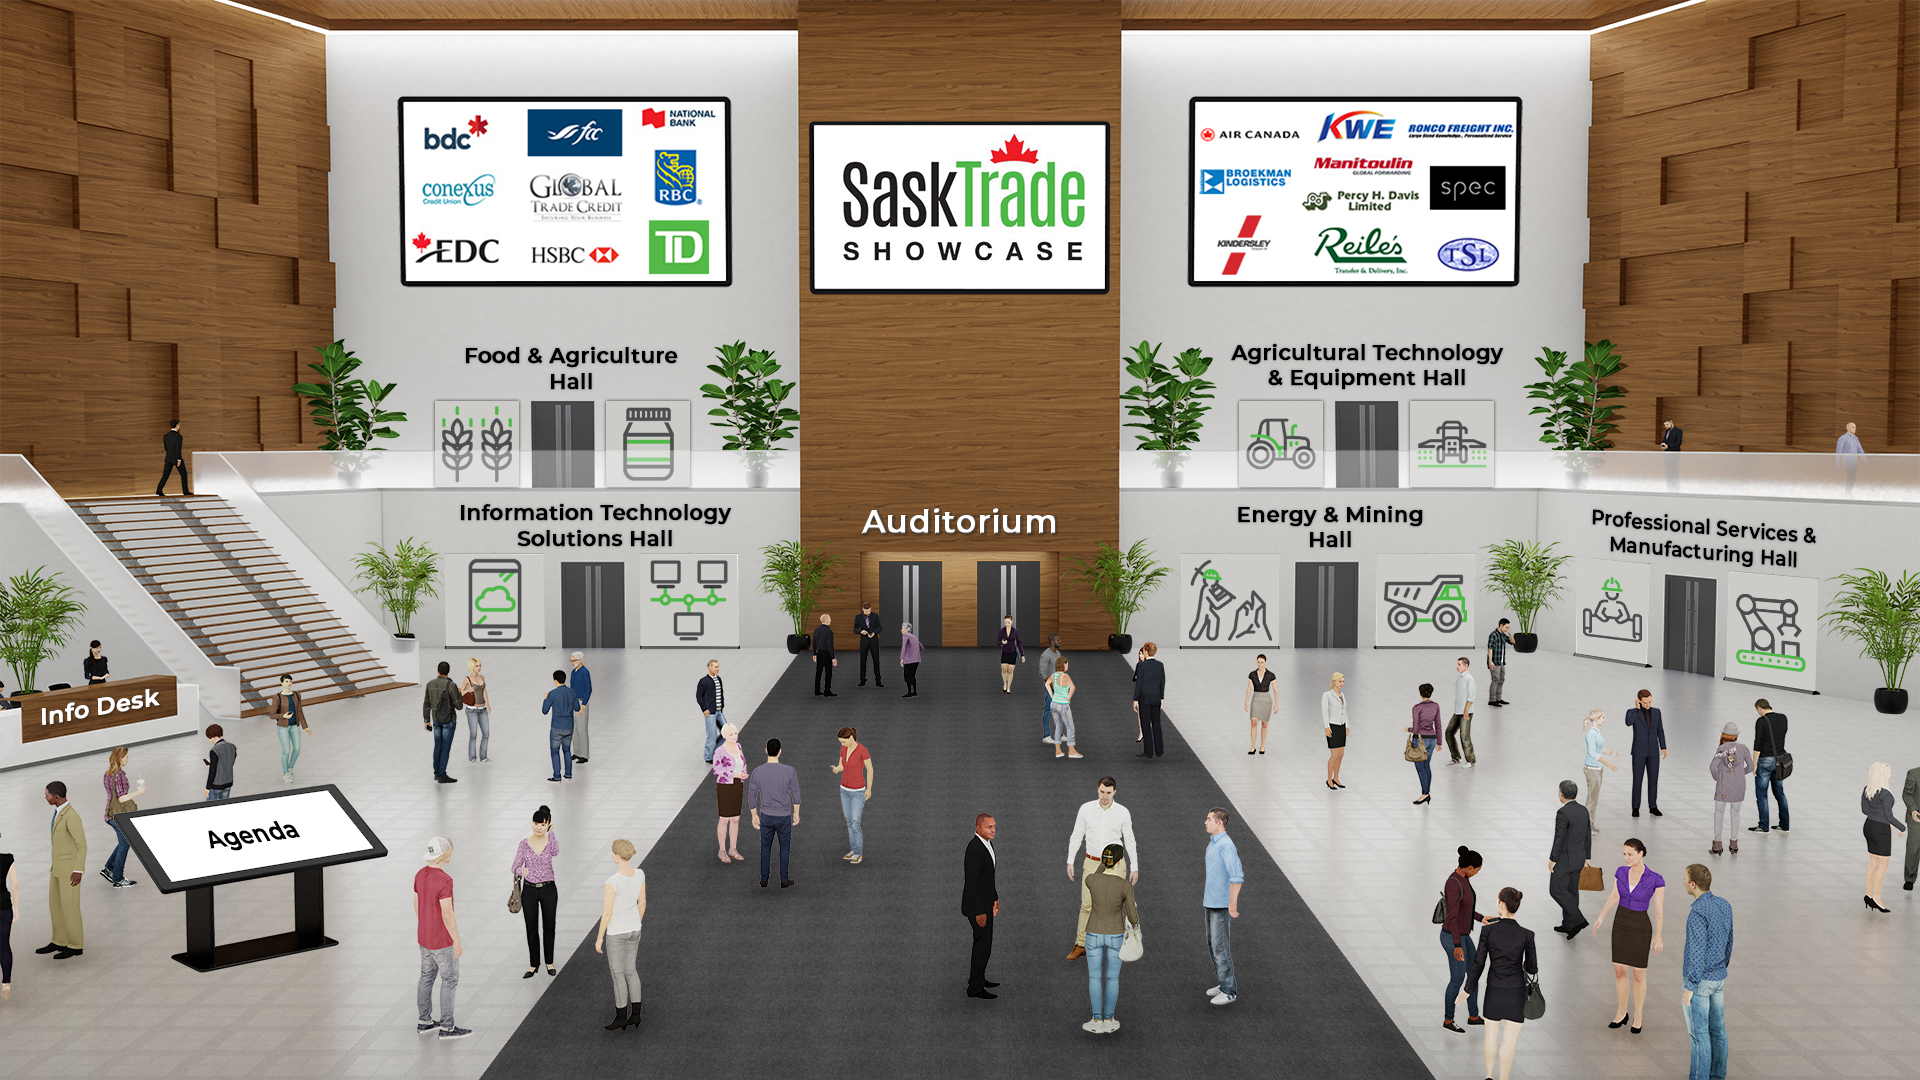 SaskTrade Showcase Virtual Lobby